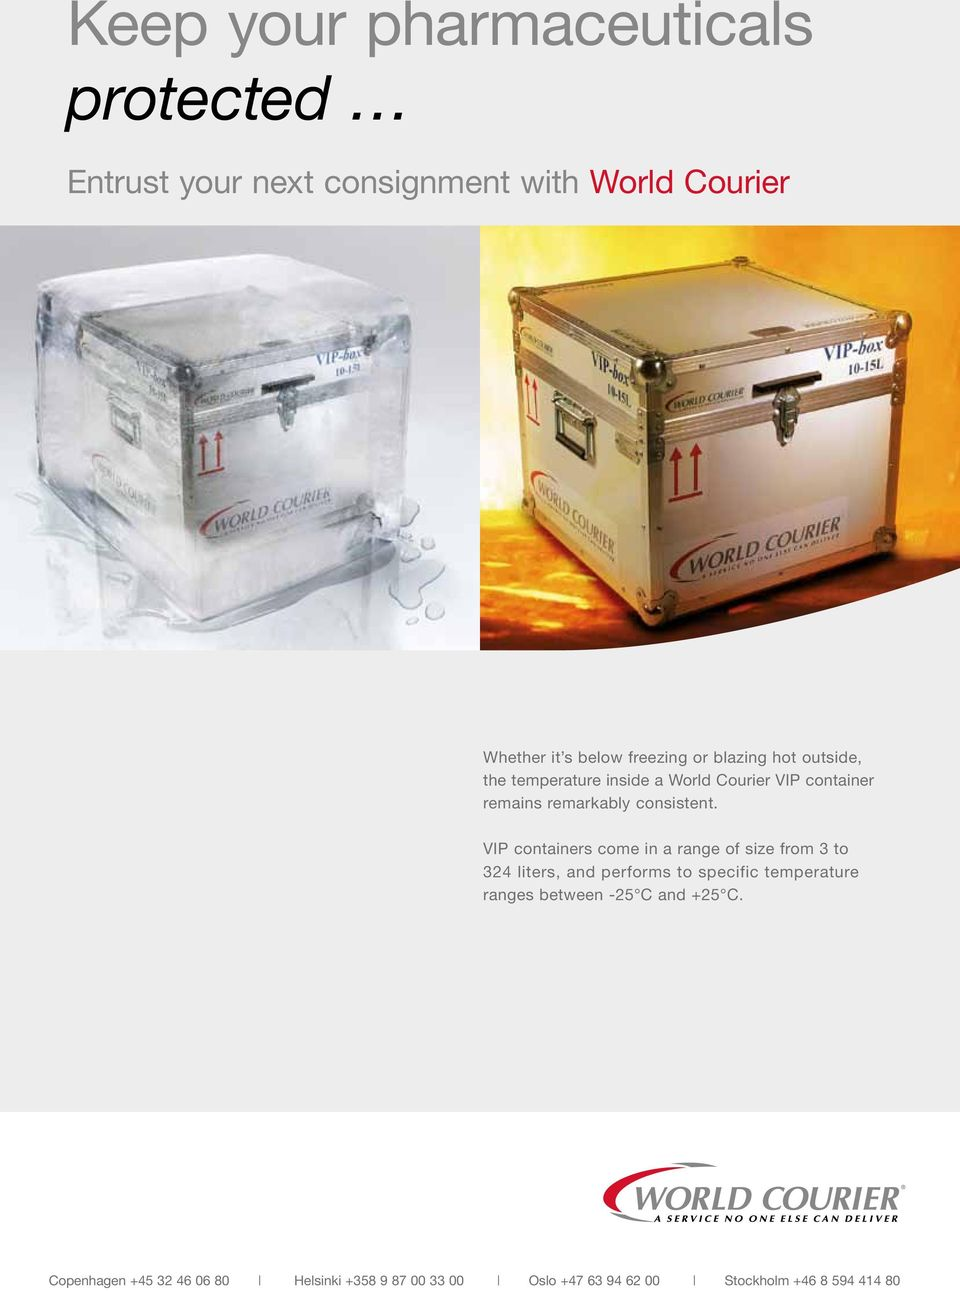 VIP containers come in a range of size from 3 to 324 liters, and performs to specific temperature ranges between